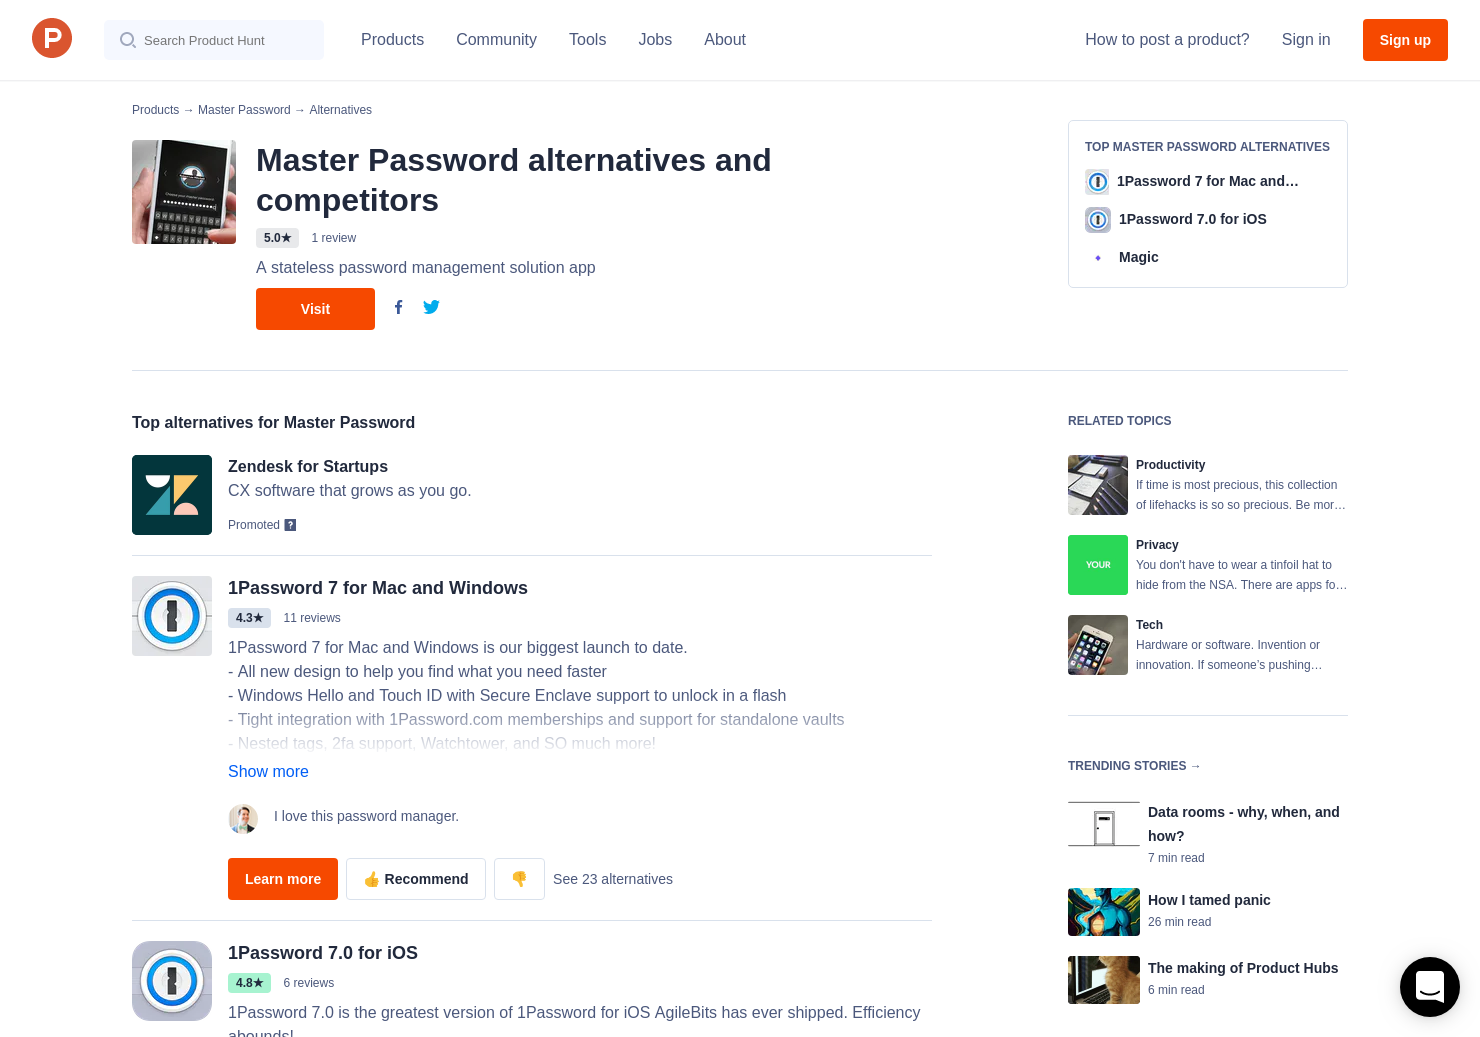 18 Alternatives to Master Password | Product Hunt